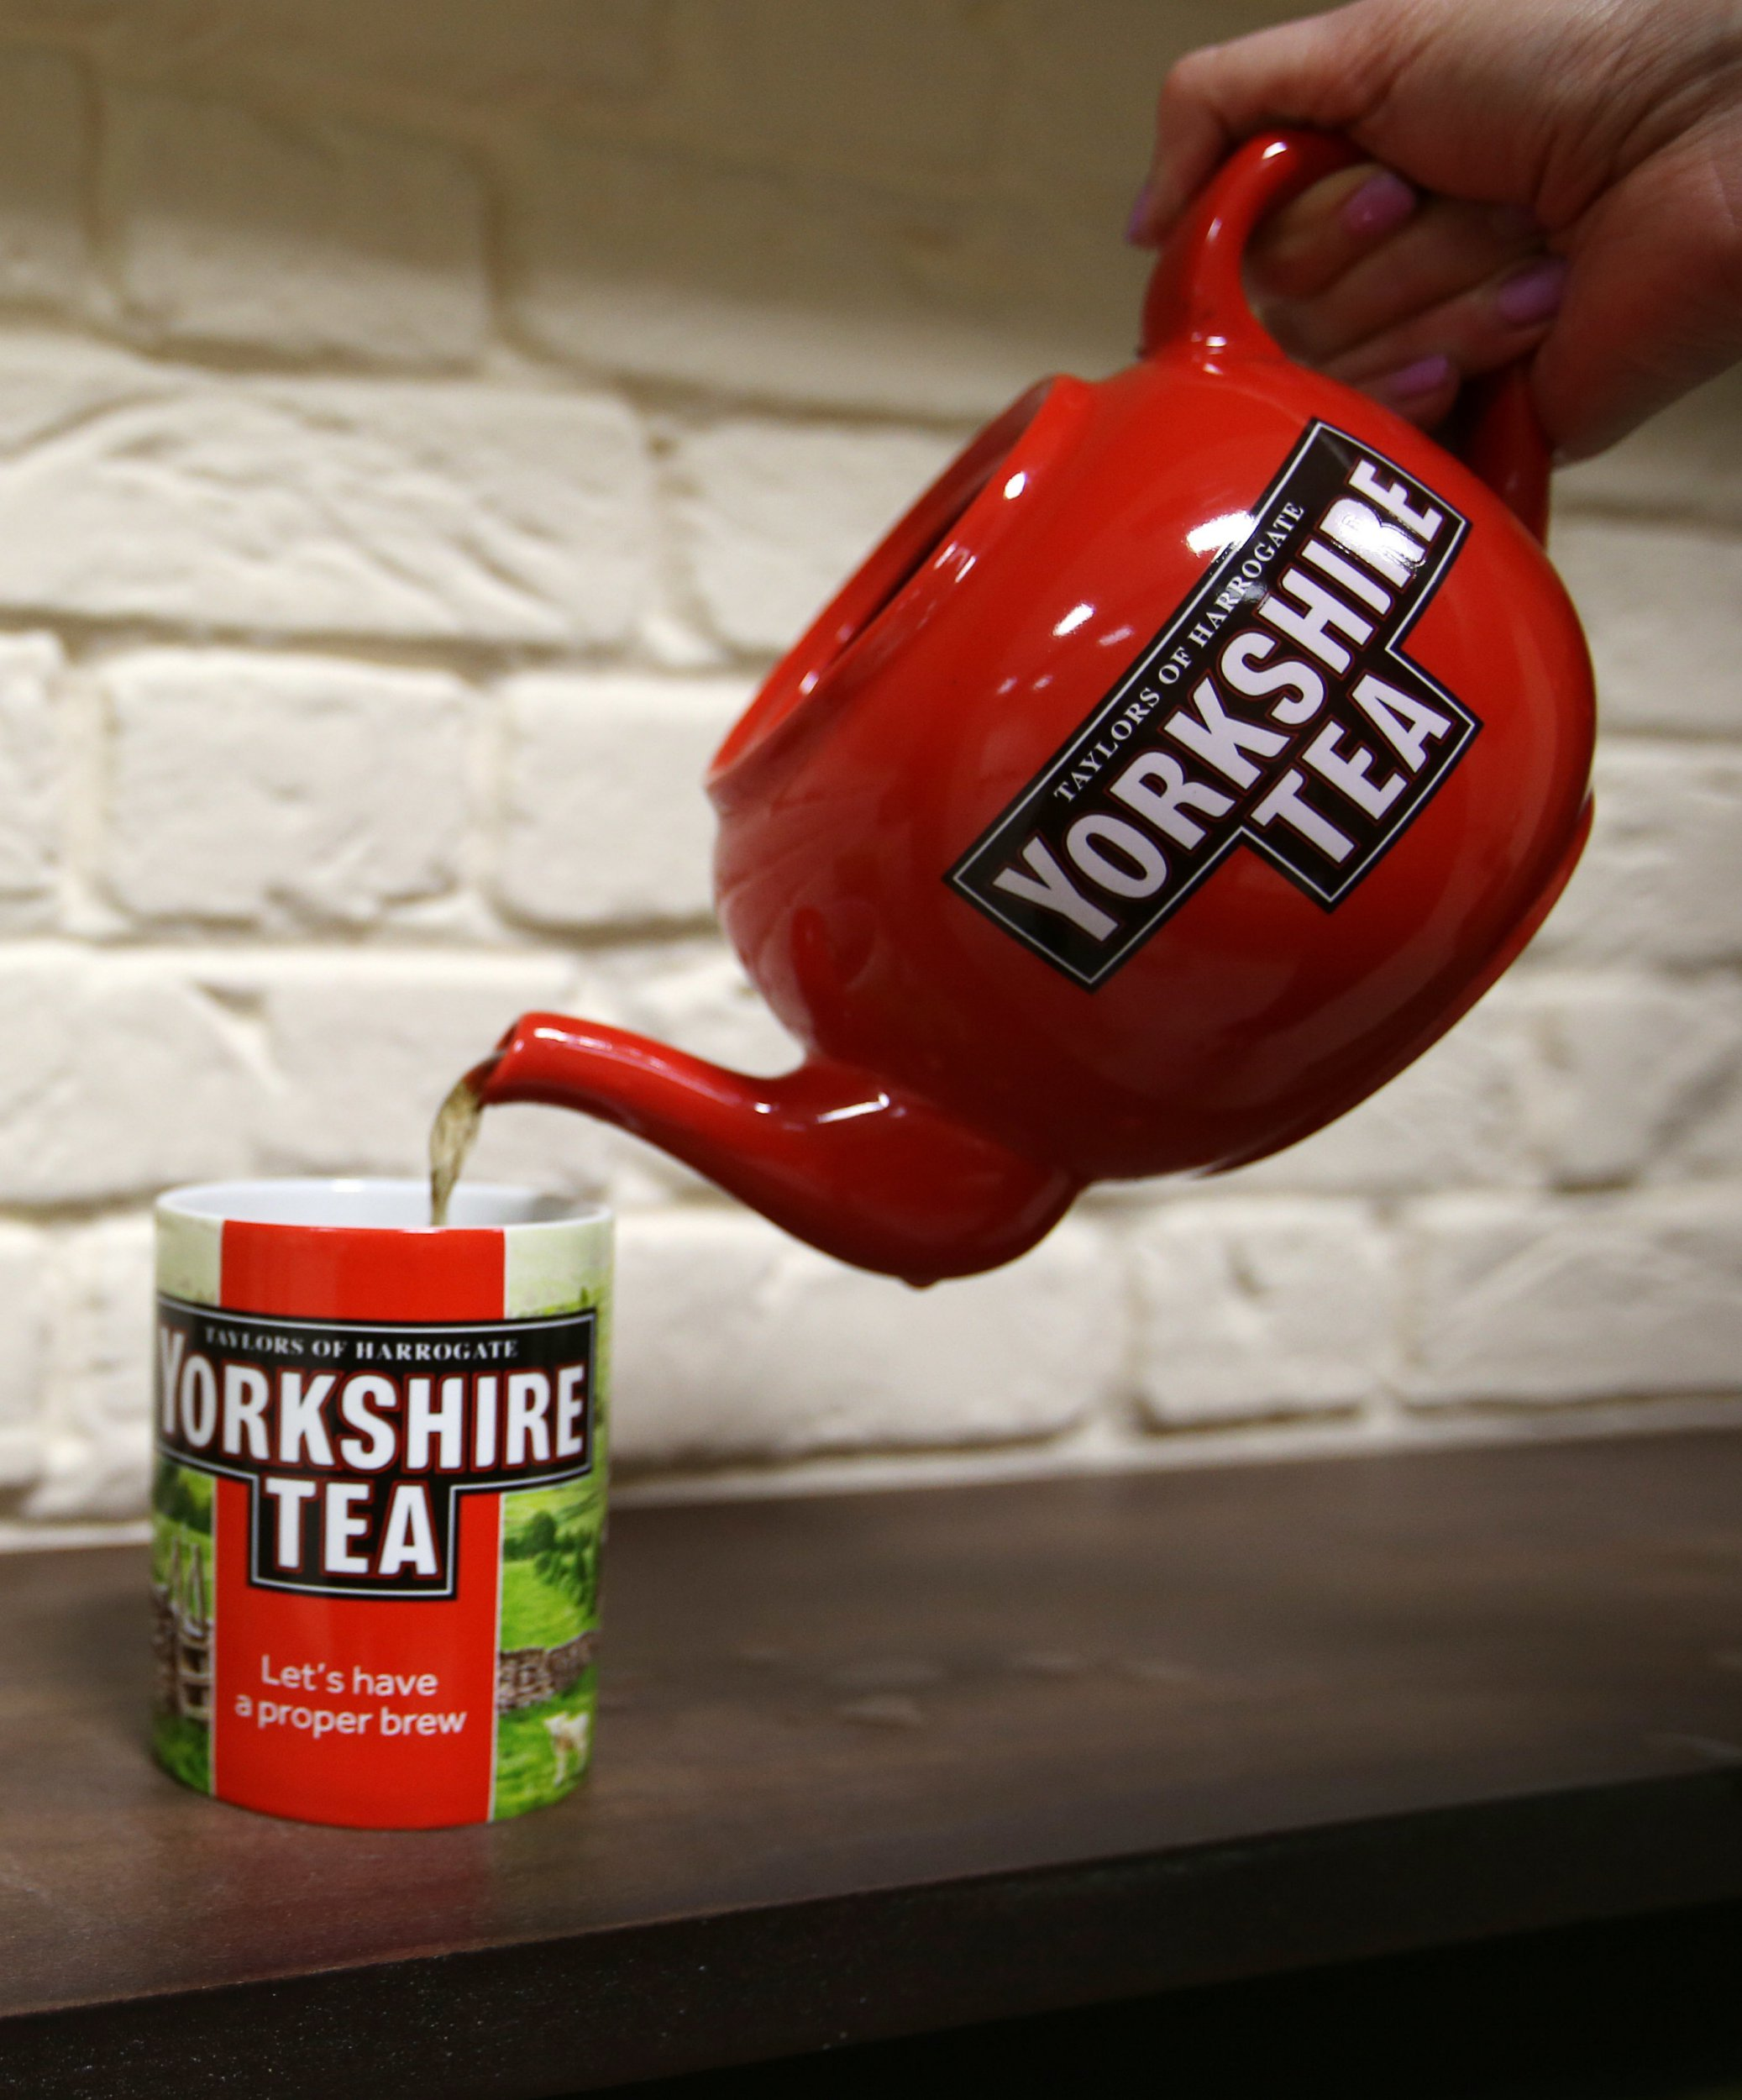 File photo dated 06/05/15 of a cup of Yorkshire Tea being poured from a teapot. The brand's new biodegradable tea bags have left customers stewing - after they complained the flimsy bags were ruining their cuppas. PRESS ASSOCIATION Photo. Issue date: Tuesday December 18, 2018. Tea lovers contacted the company in despair, reporting that the once-reliable tea bags were splitting in their brews.See PA story CONSUMER YorkshireTea. Photo credit should read: Lynne Cameron/PA Wire